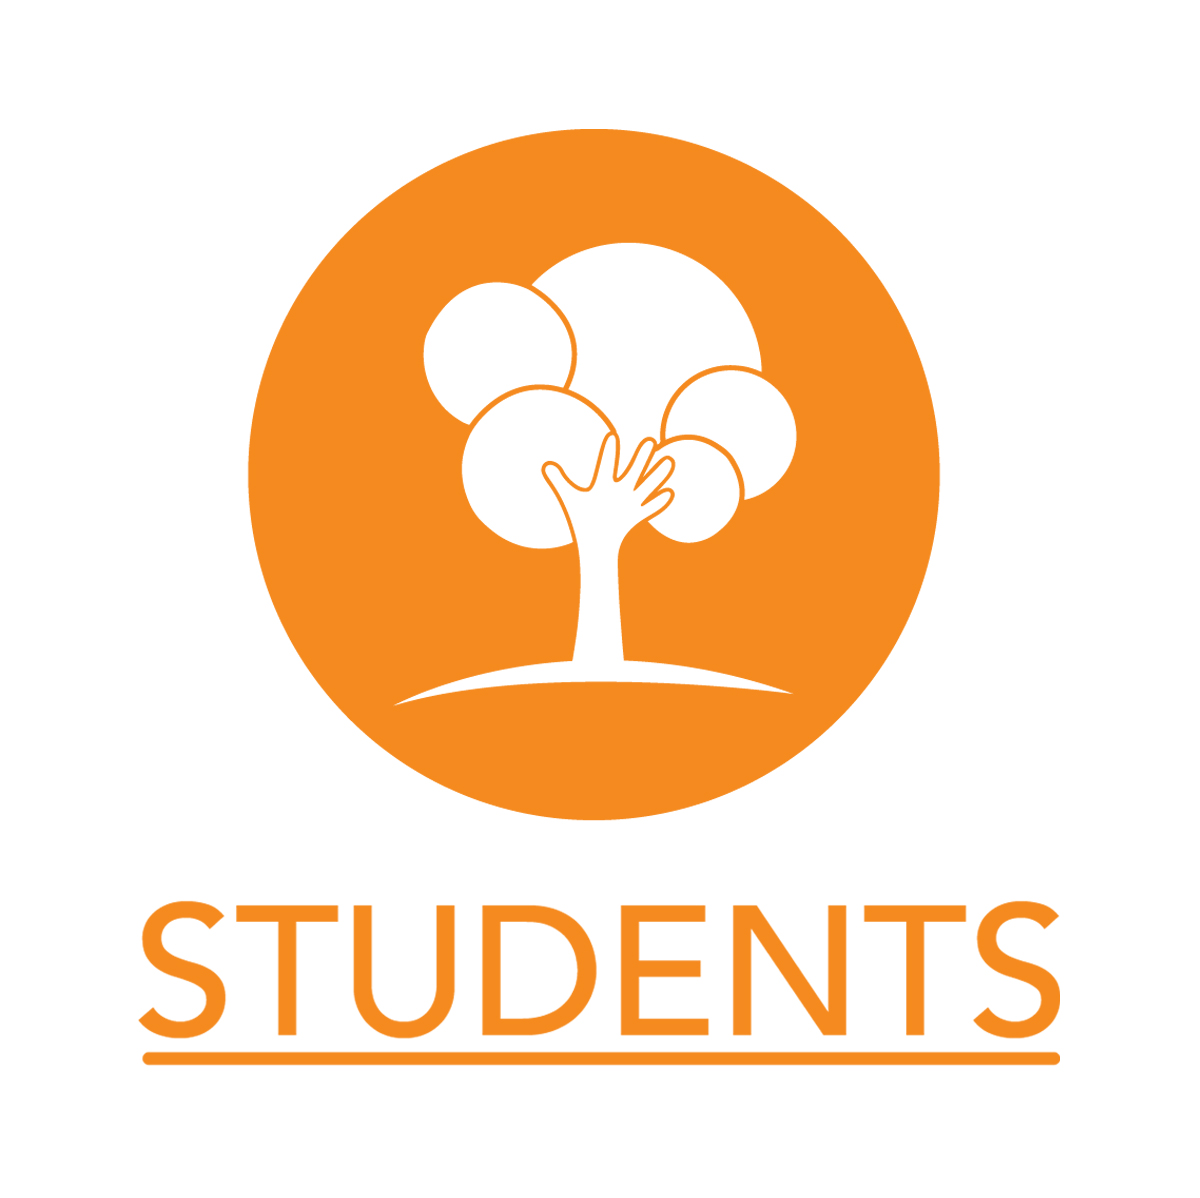 Students facebook logo harmony hill copyright all rights reserved 2017 biocorpaavc